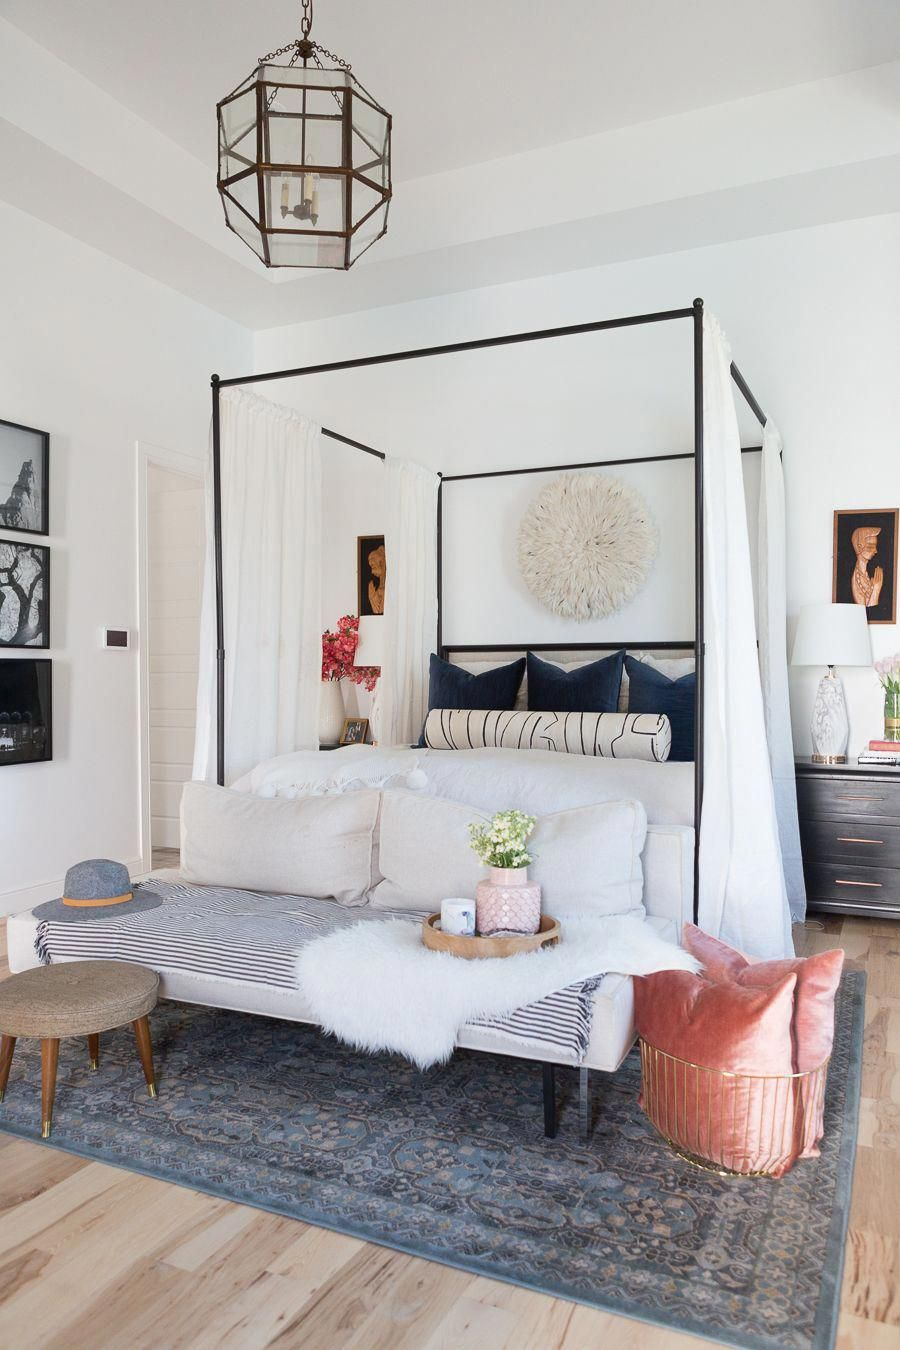 How To Use A Juju Hat In Home Decor 24 Navy Modern Master